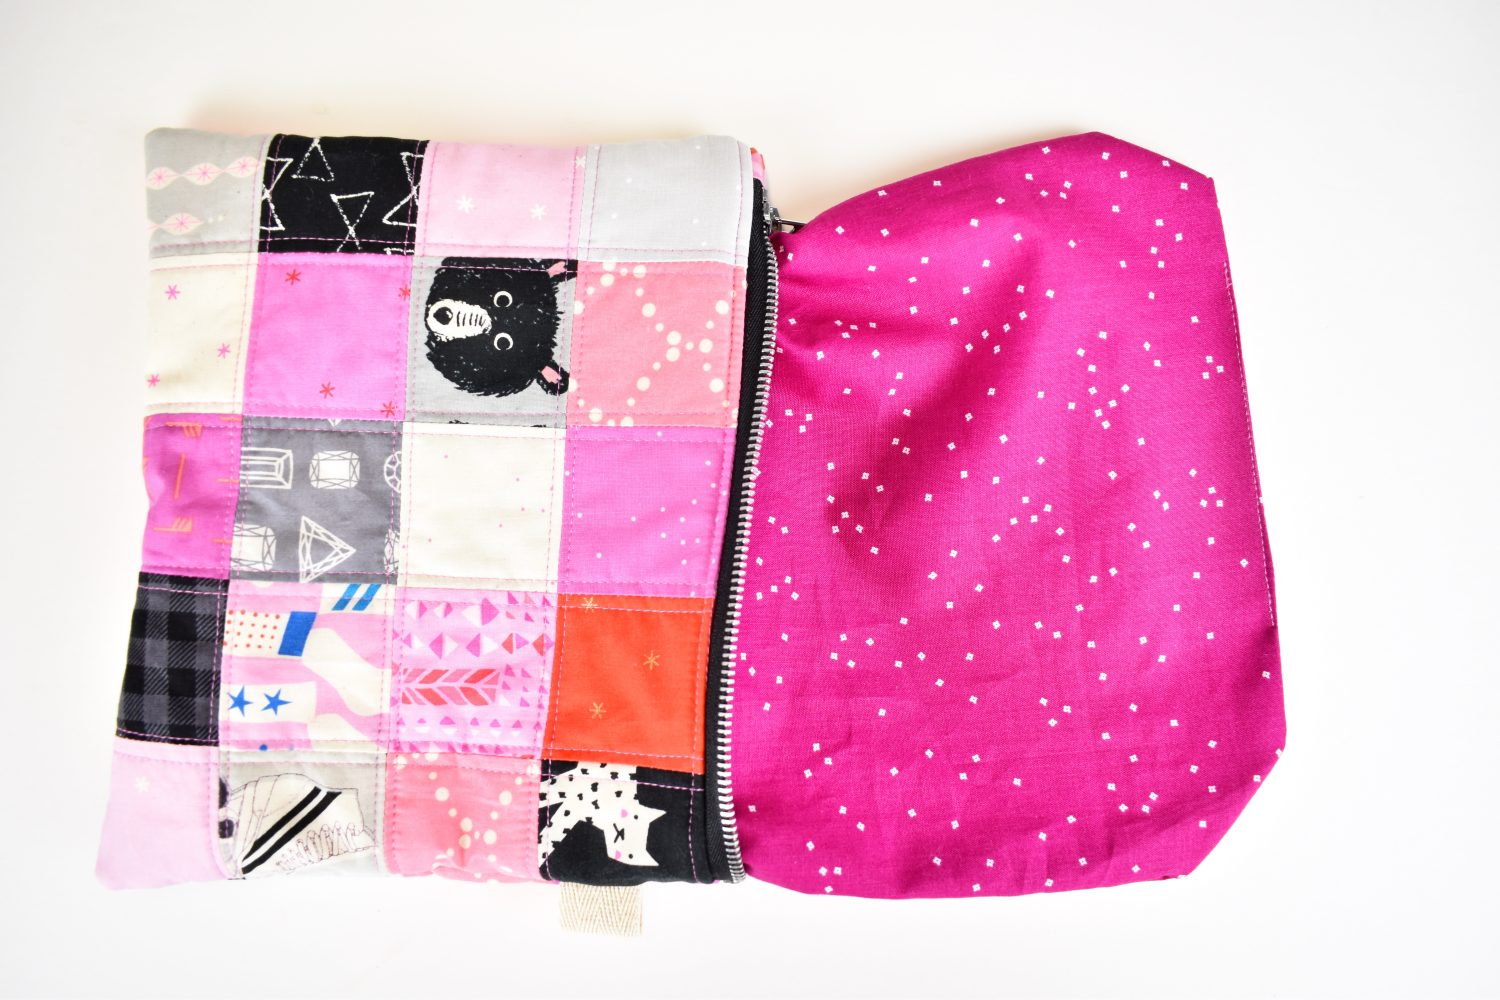 turn scrappy zipper pouch right side out